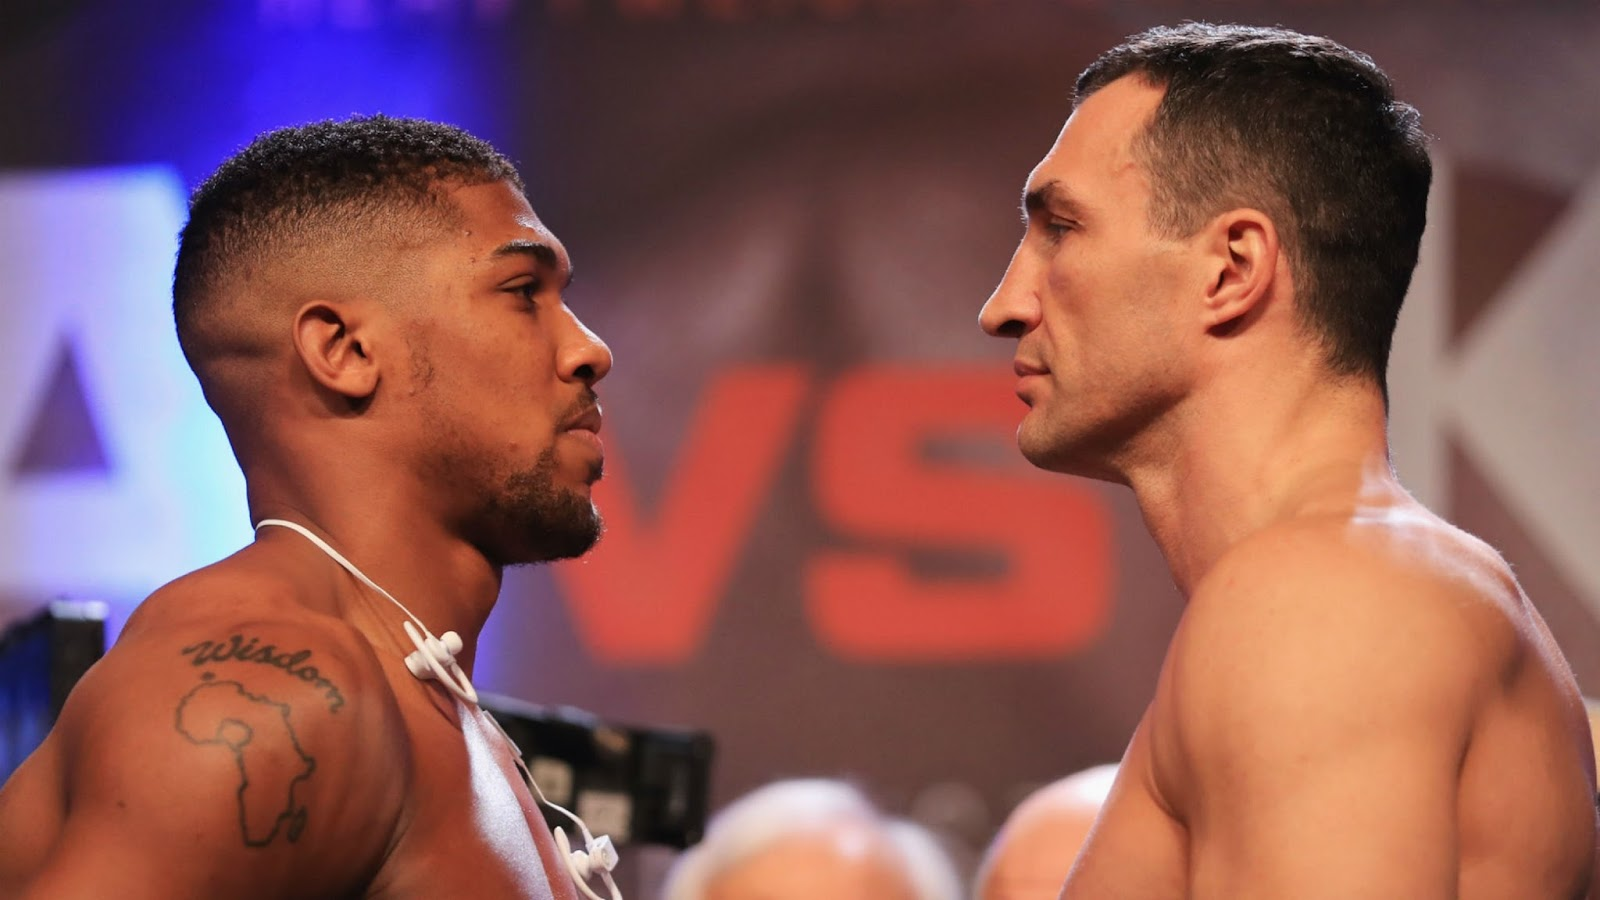 ANTHONY JOSHUA VS. WLADIMIR KLITSCHKO 9